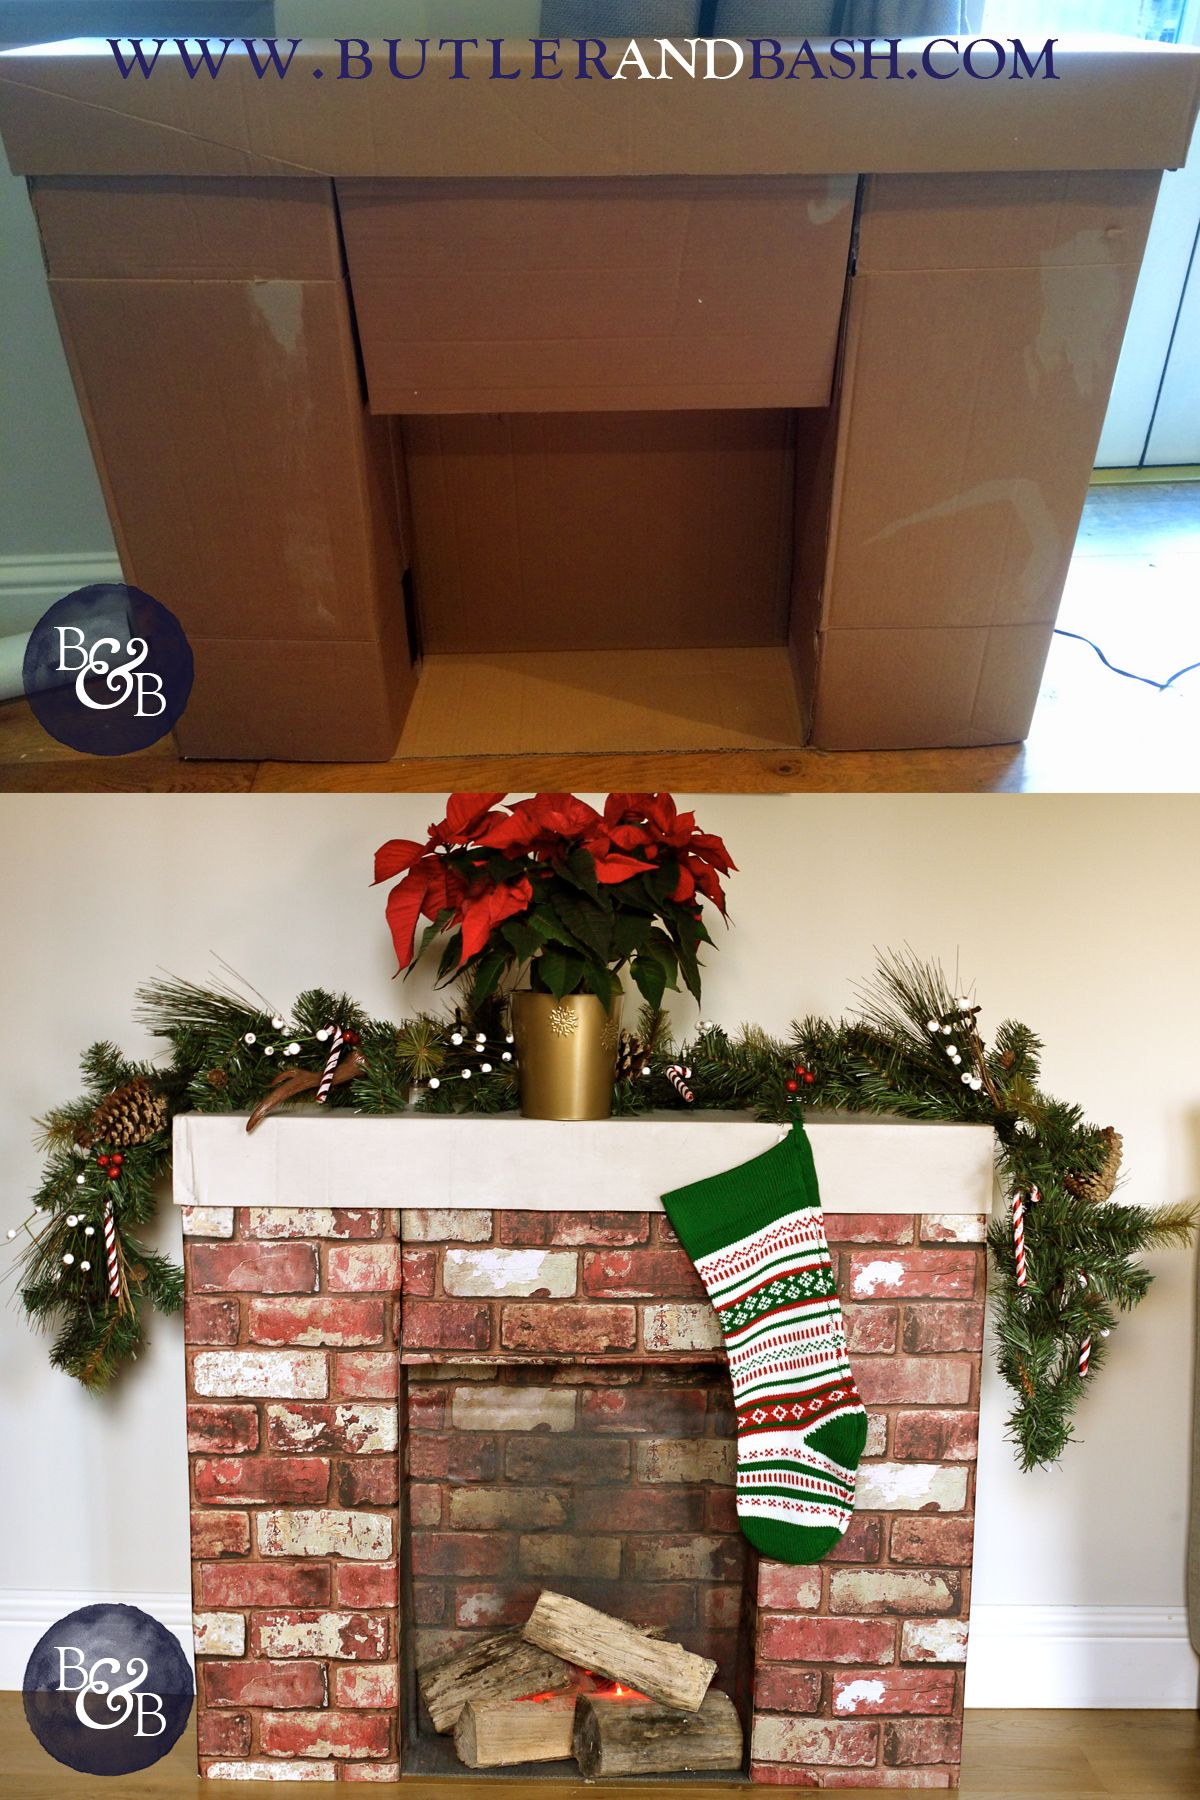 faux fireplace made from cardboard boxes coved with brick effect